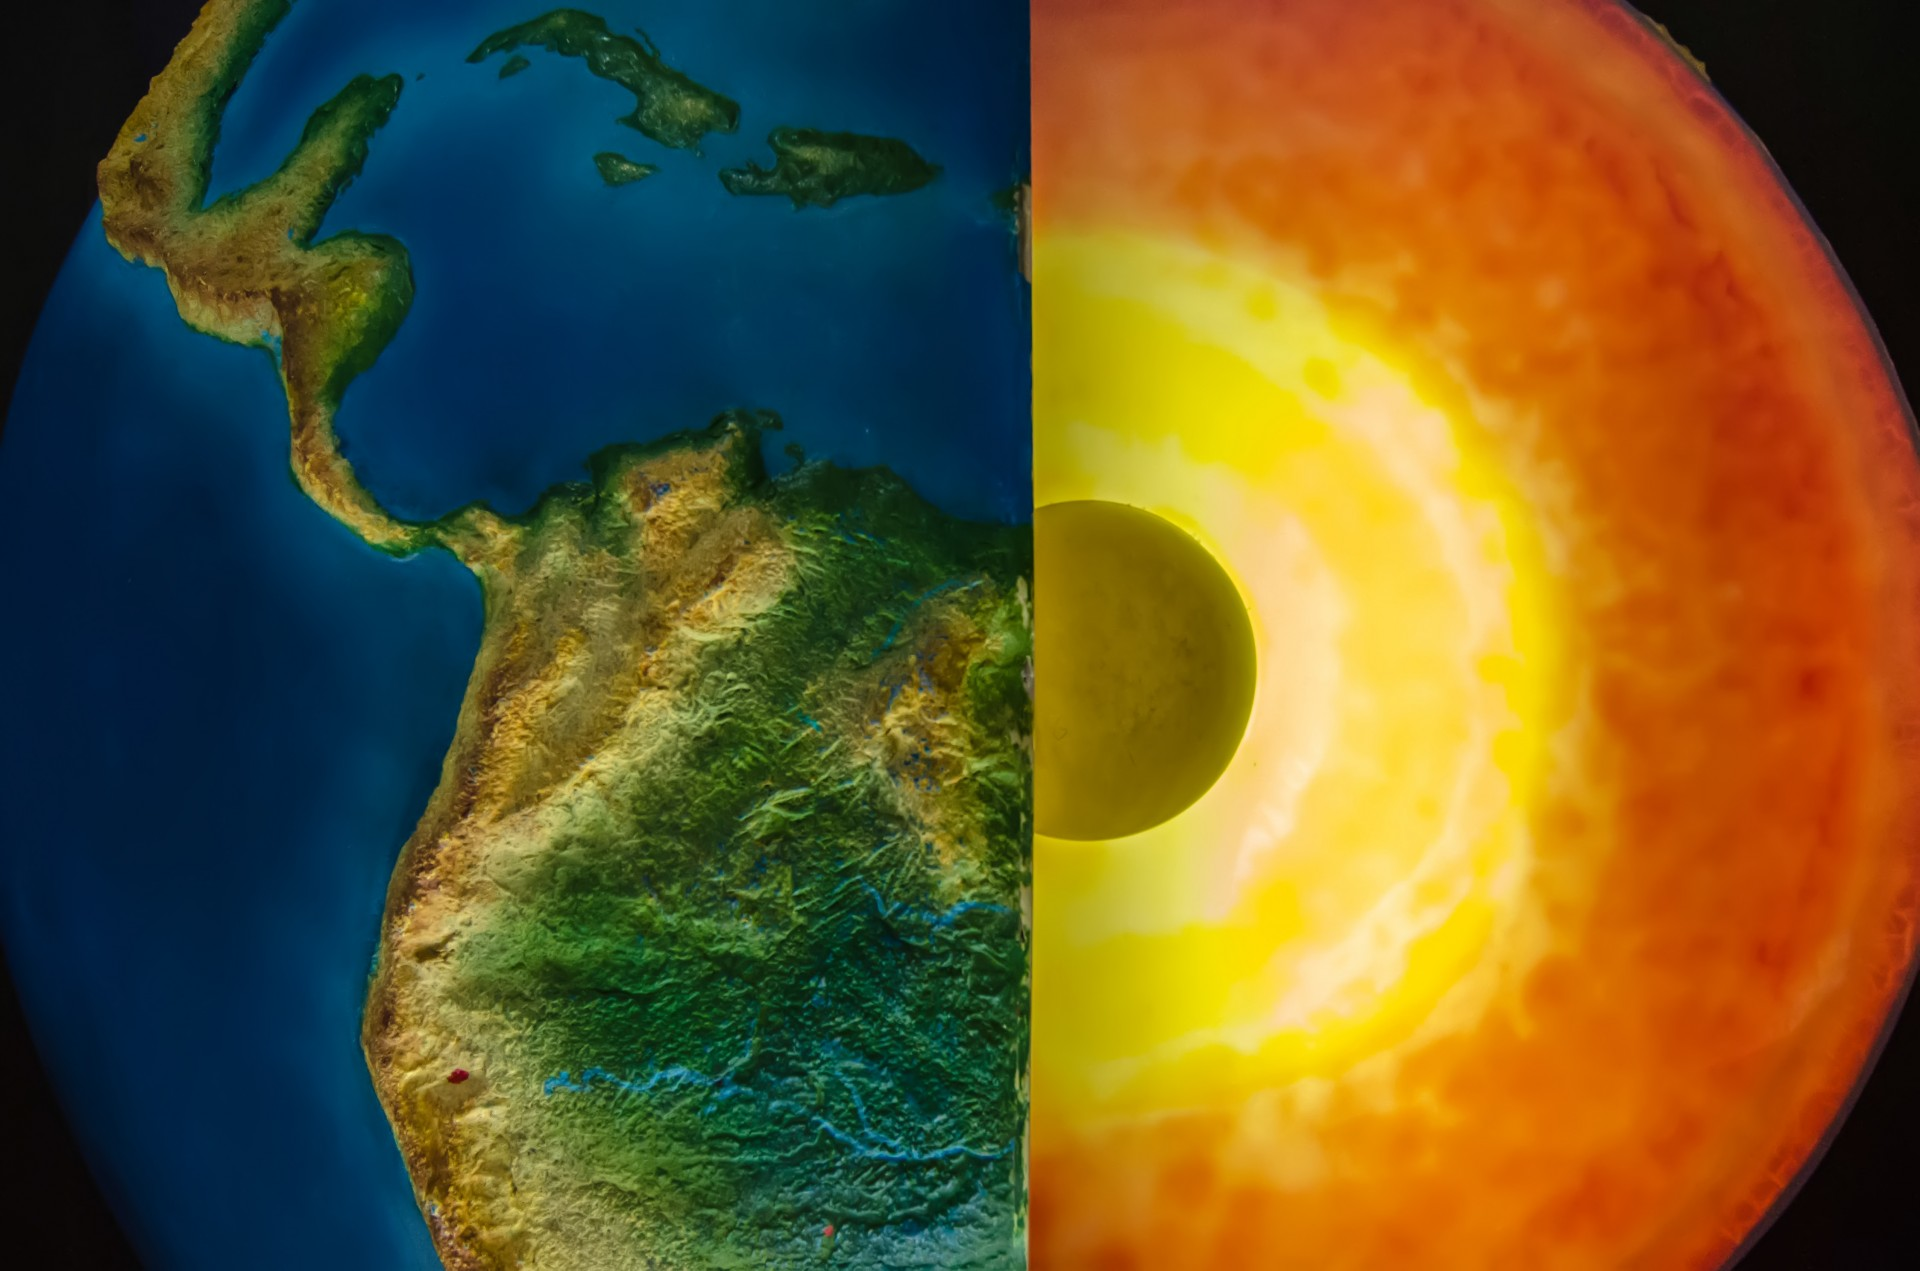 How long is the remaining time until the core of the earth runs out of fuel?